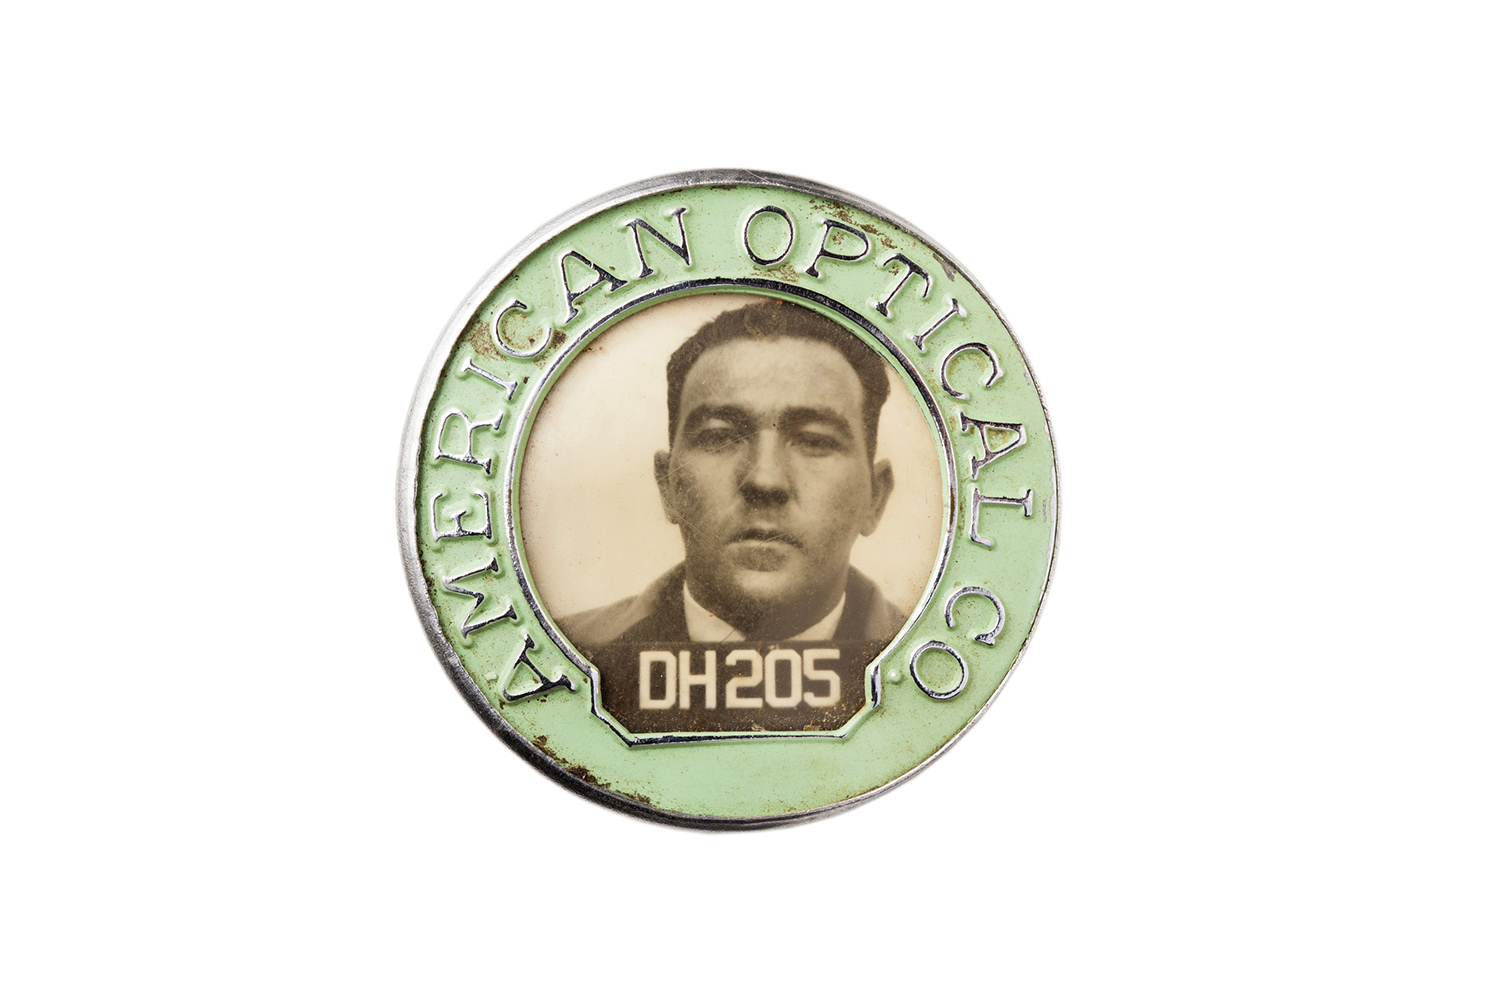 The ID badge of an employee at the American Optical Co.